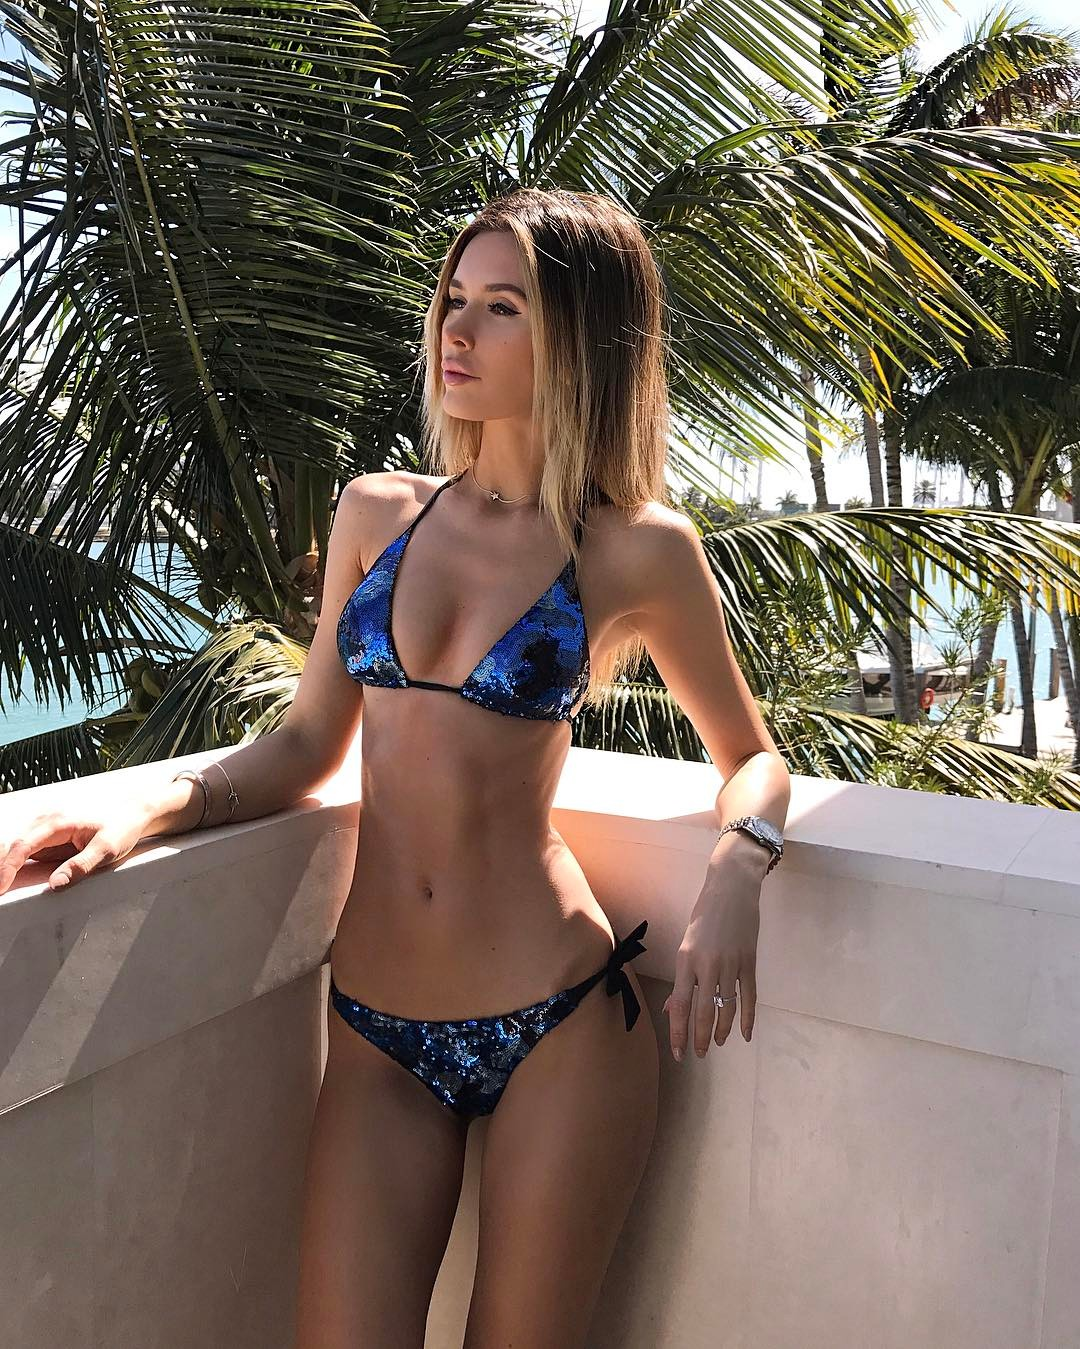 Instagram Tika Camaj nudes (16 foto and video), Pussy, Leaked, Boobs, butt 2020